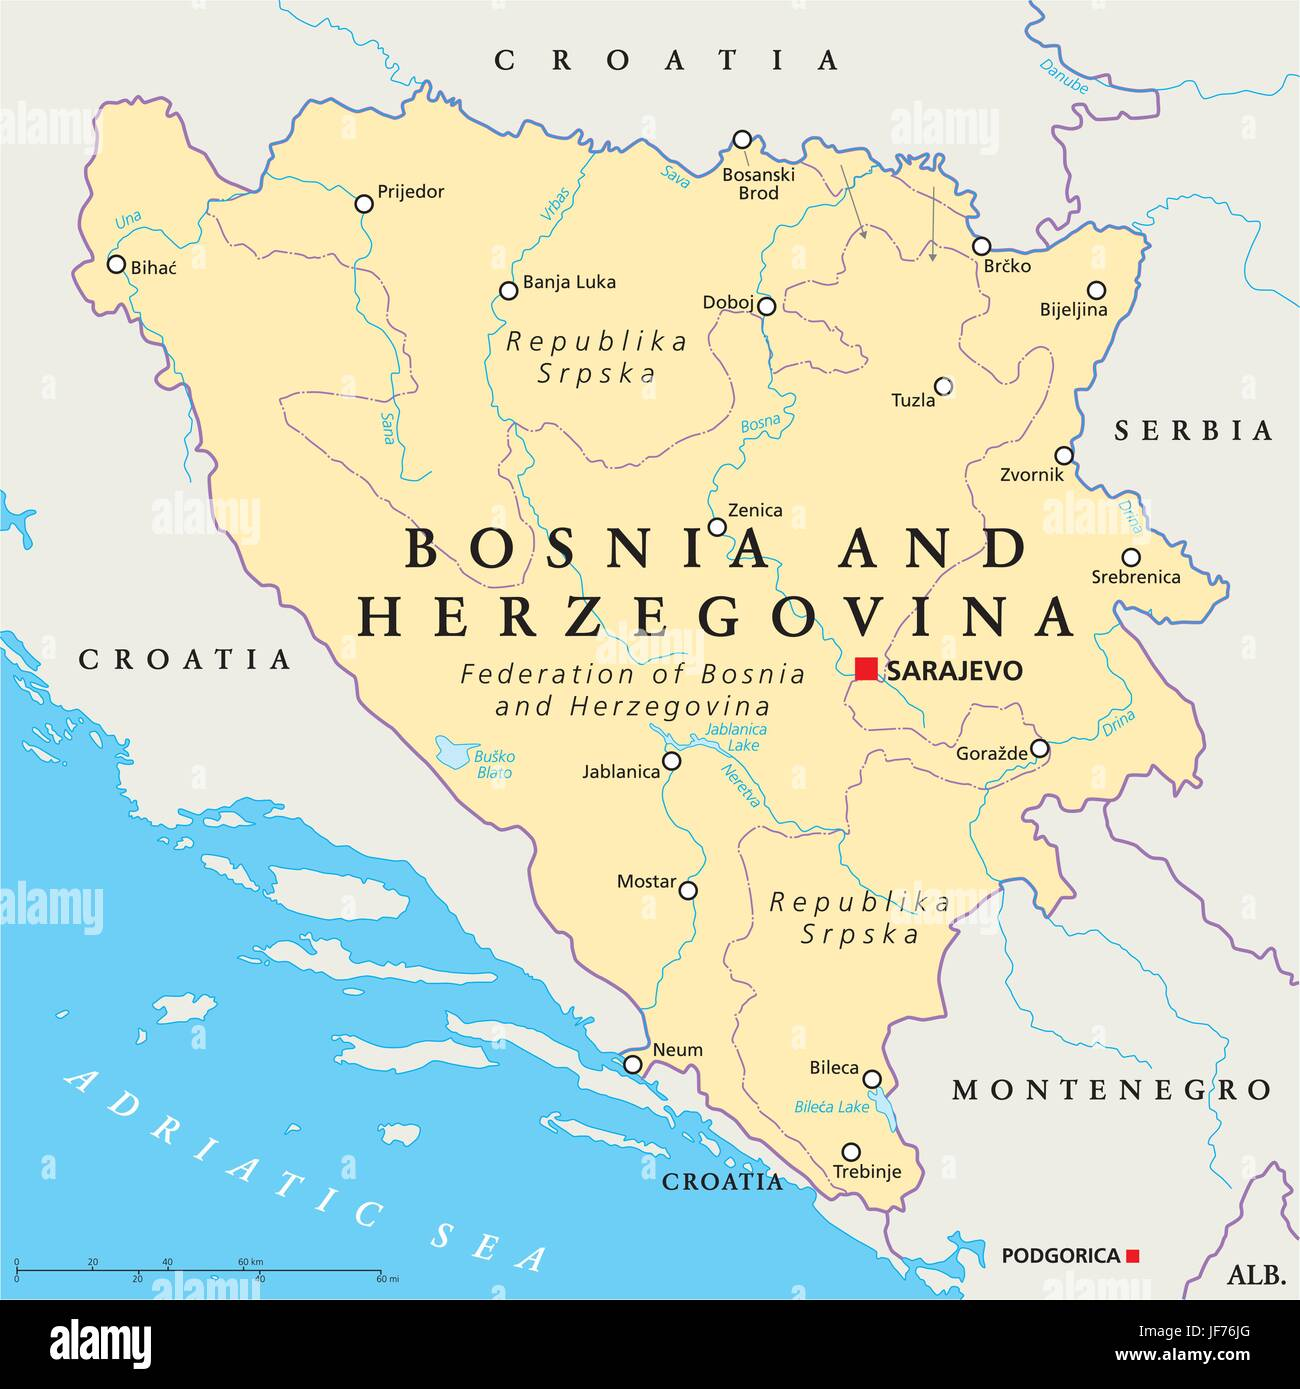 bosnia, map, atlas, map of the world, travel, europe, adriatic sea, croatia, - Stock Image